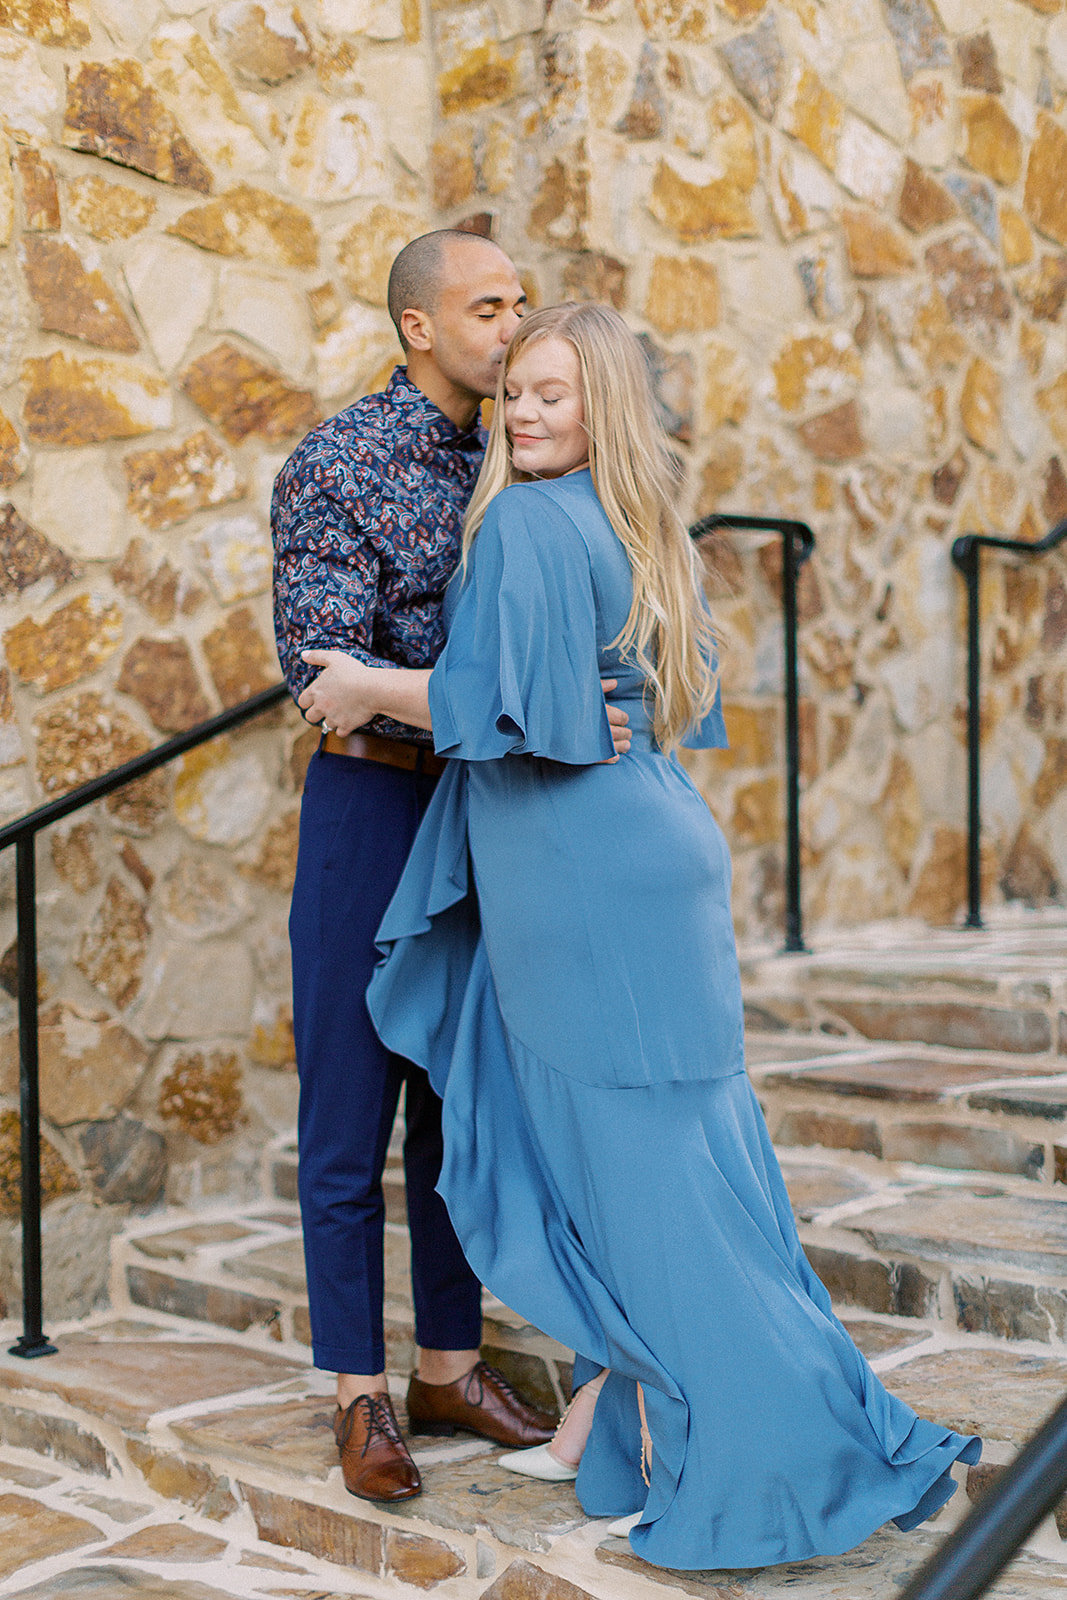 Rachel_+_Manny_Bello_Engagement_Session_Bella_Collina_Photographer_Casie_Marie_Photography-34